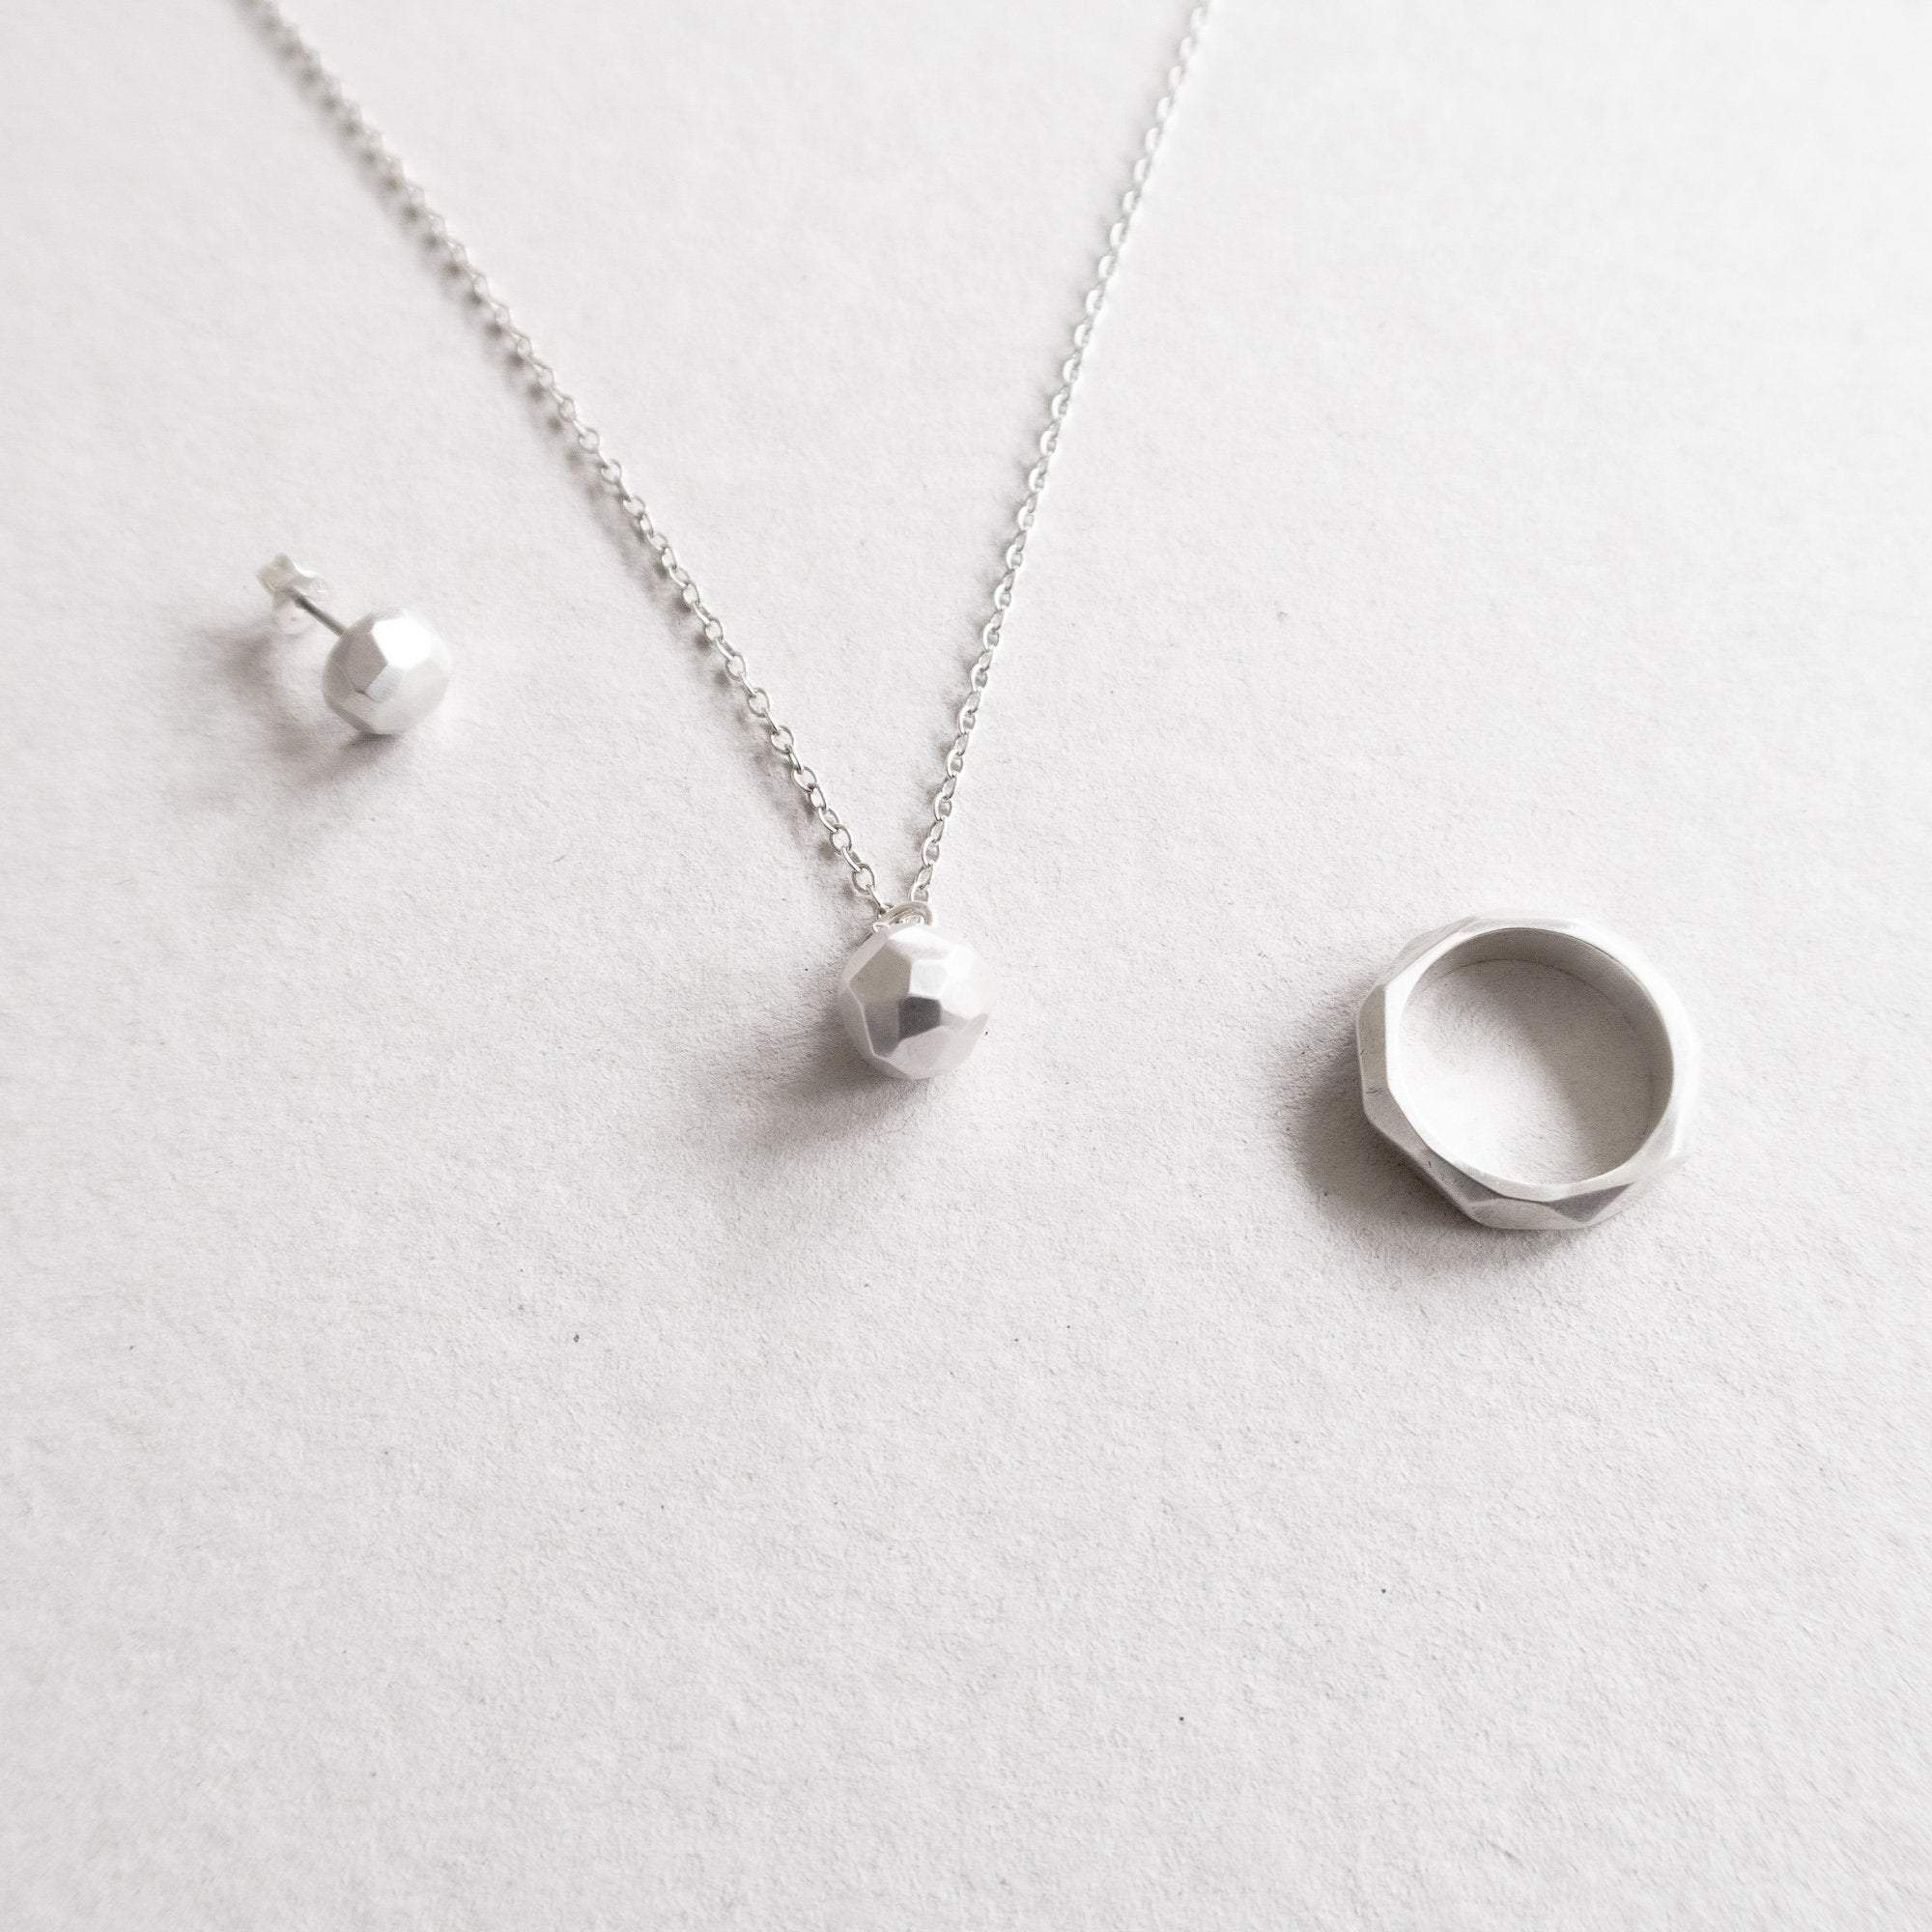 facet series ring, ear stud and pendant